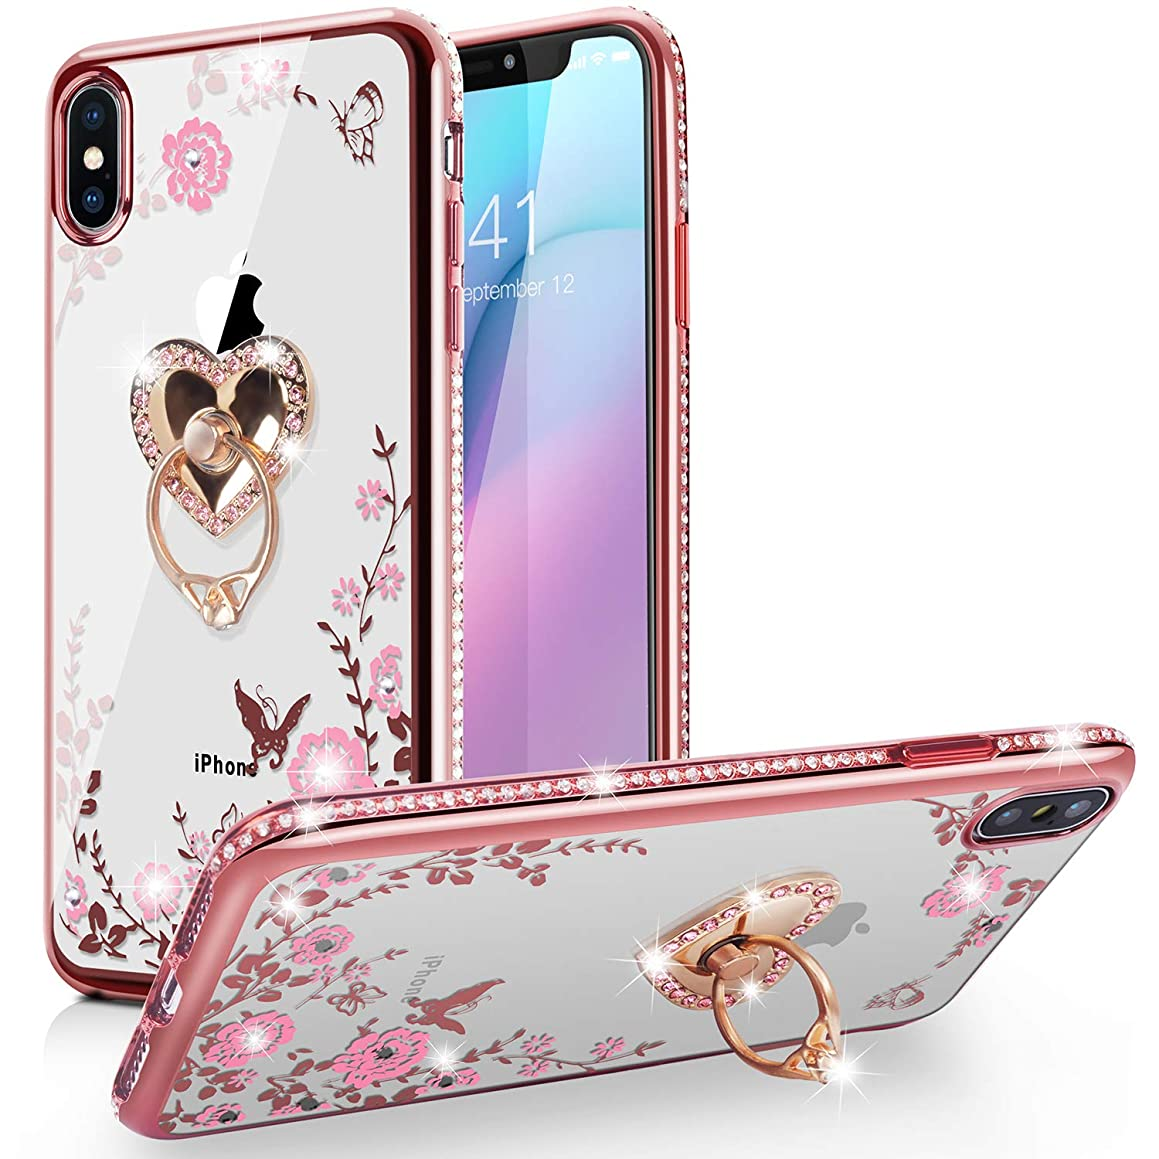 iPhone Xr Case,WATACHE Glitter Sparkles Diamond Floral Butterfly Crystal Soft TPU Protective Cover with Bling Heart Shape Ring Grip Stand + Electroplated Edge for iPhone Xr - Shiny Gold